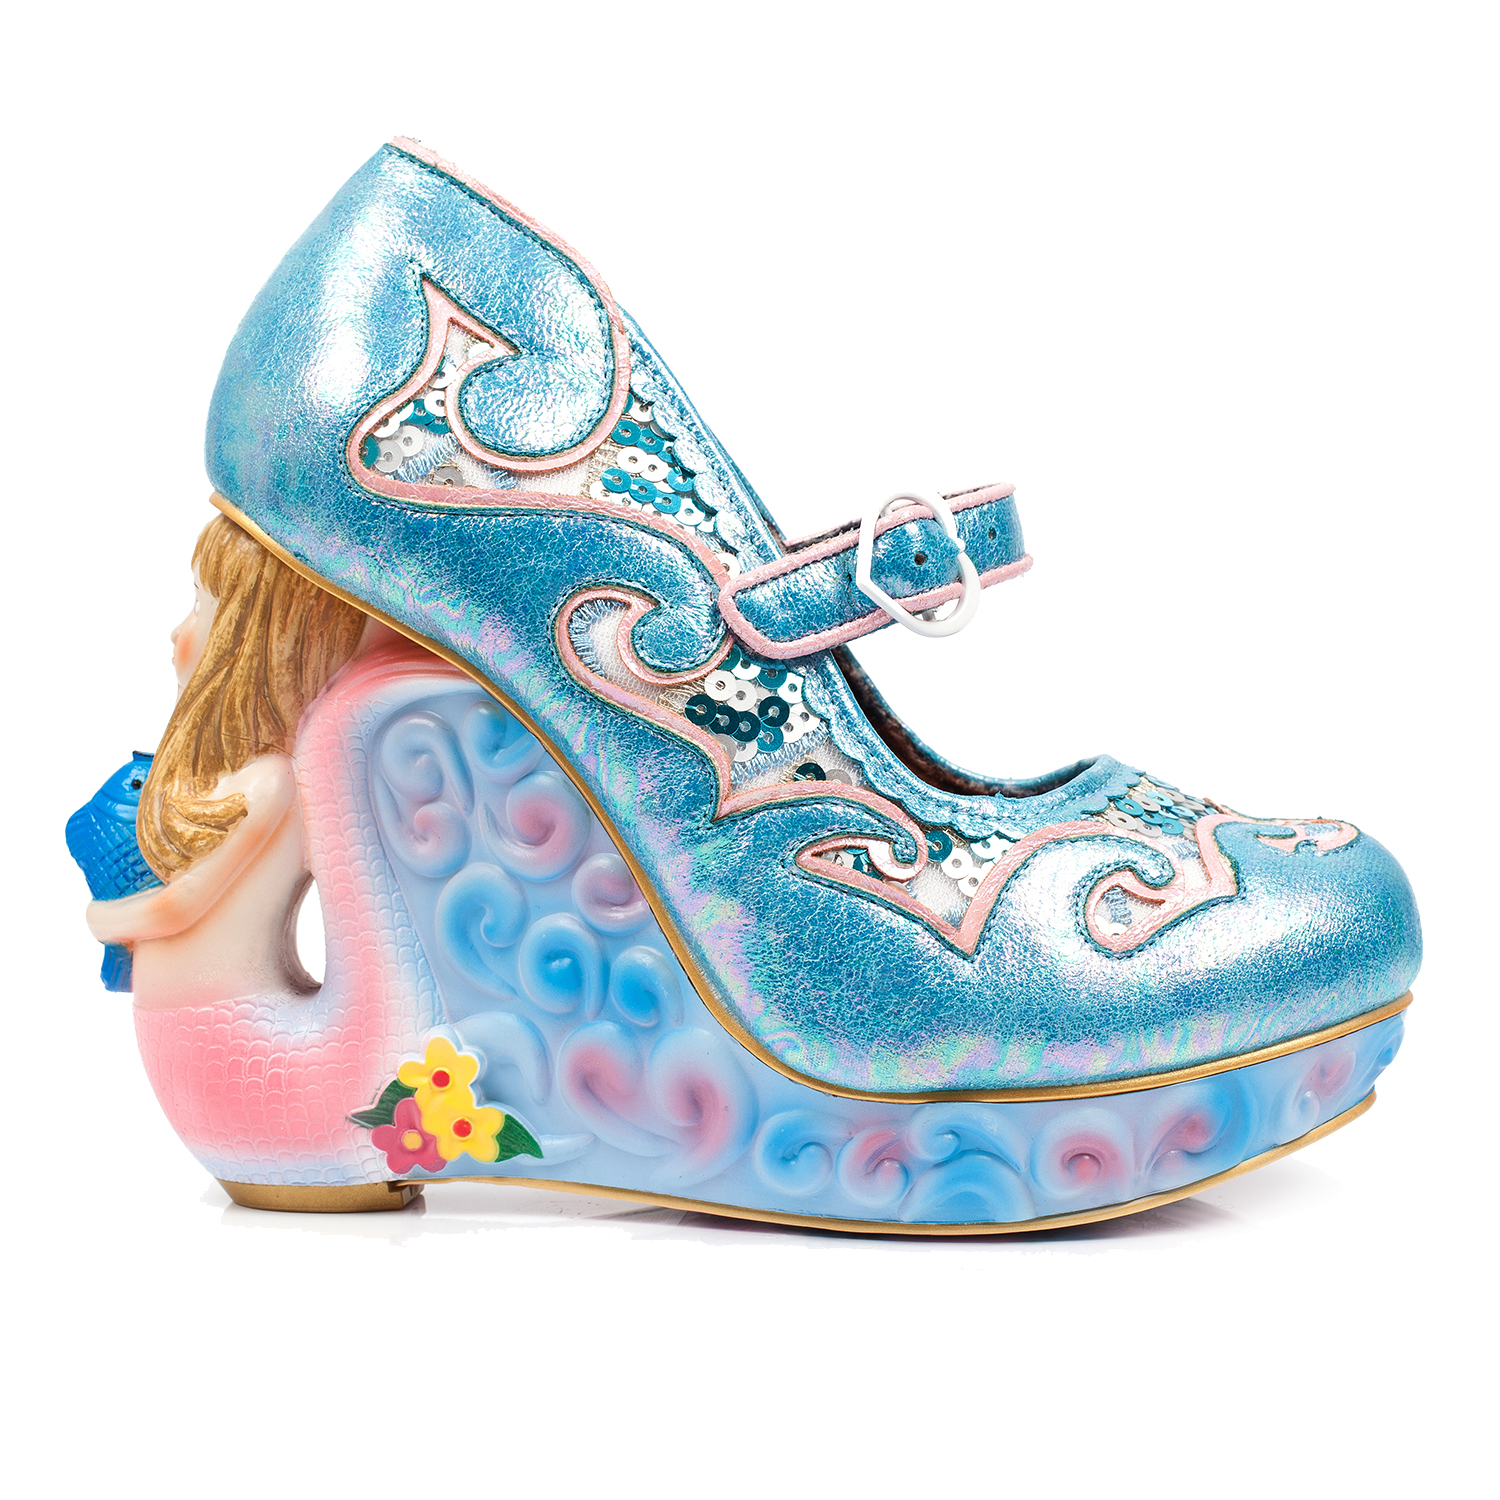 Irregular Choice Shoes Uk